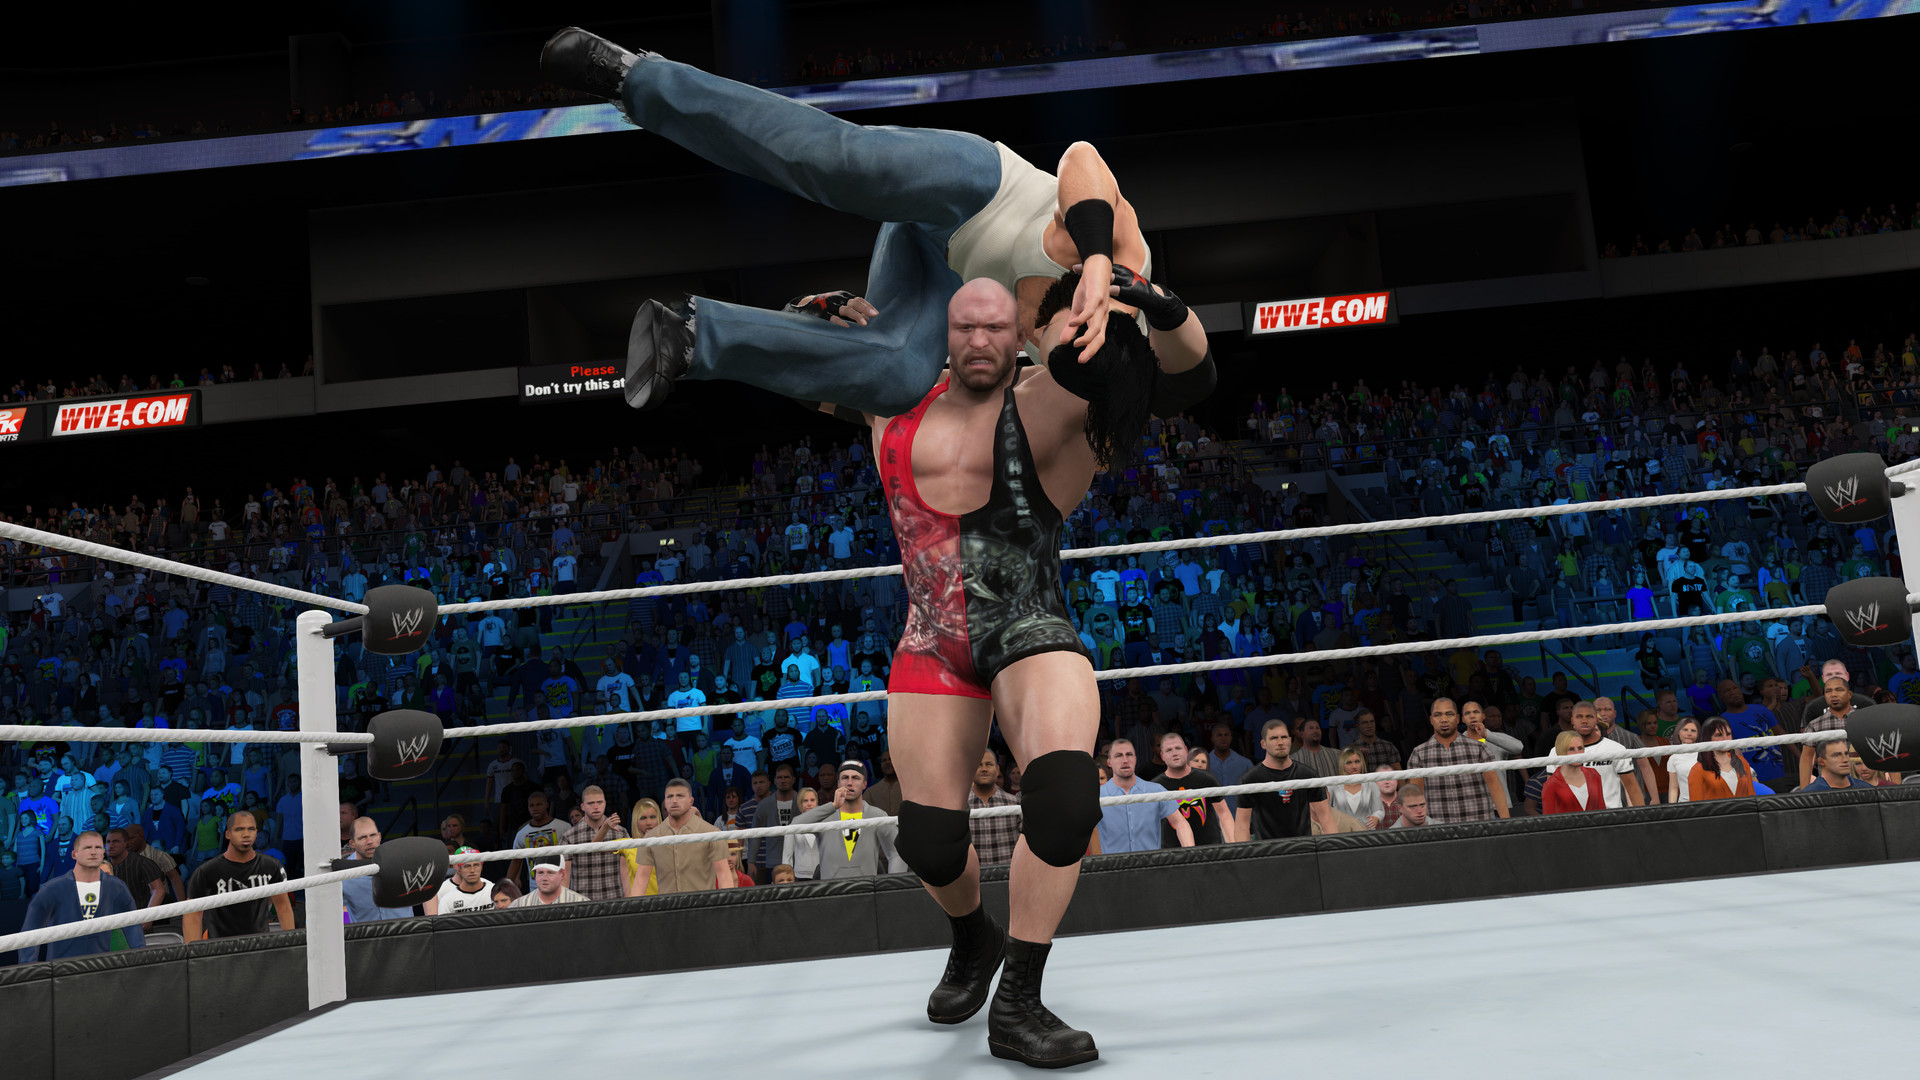 Download WWE 2K15 Full PC Game